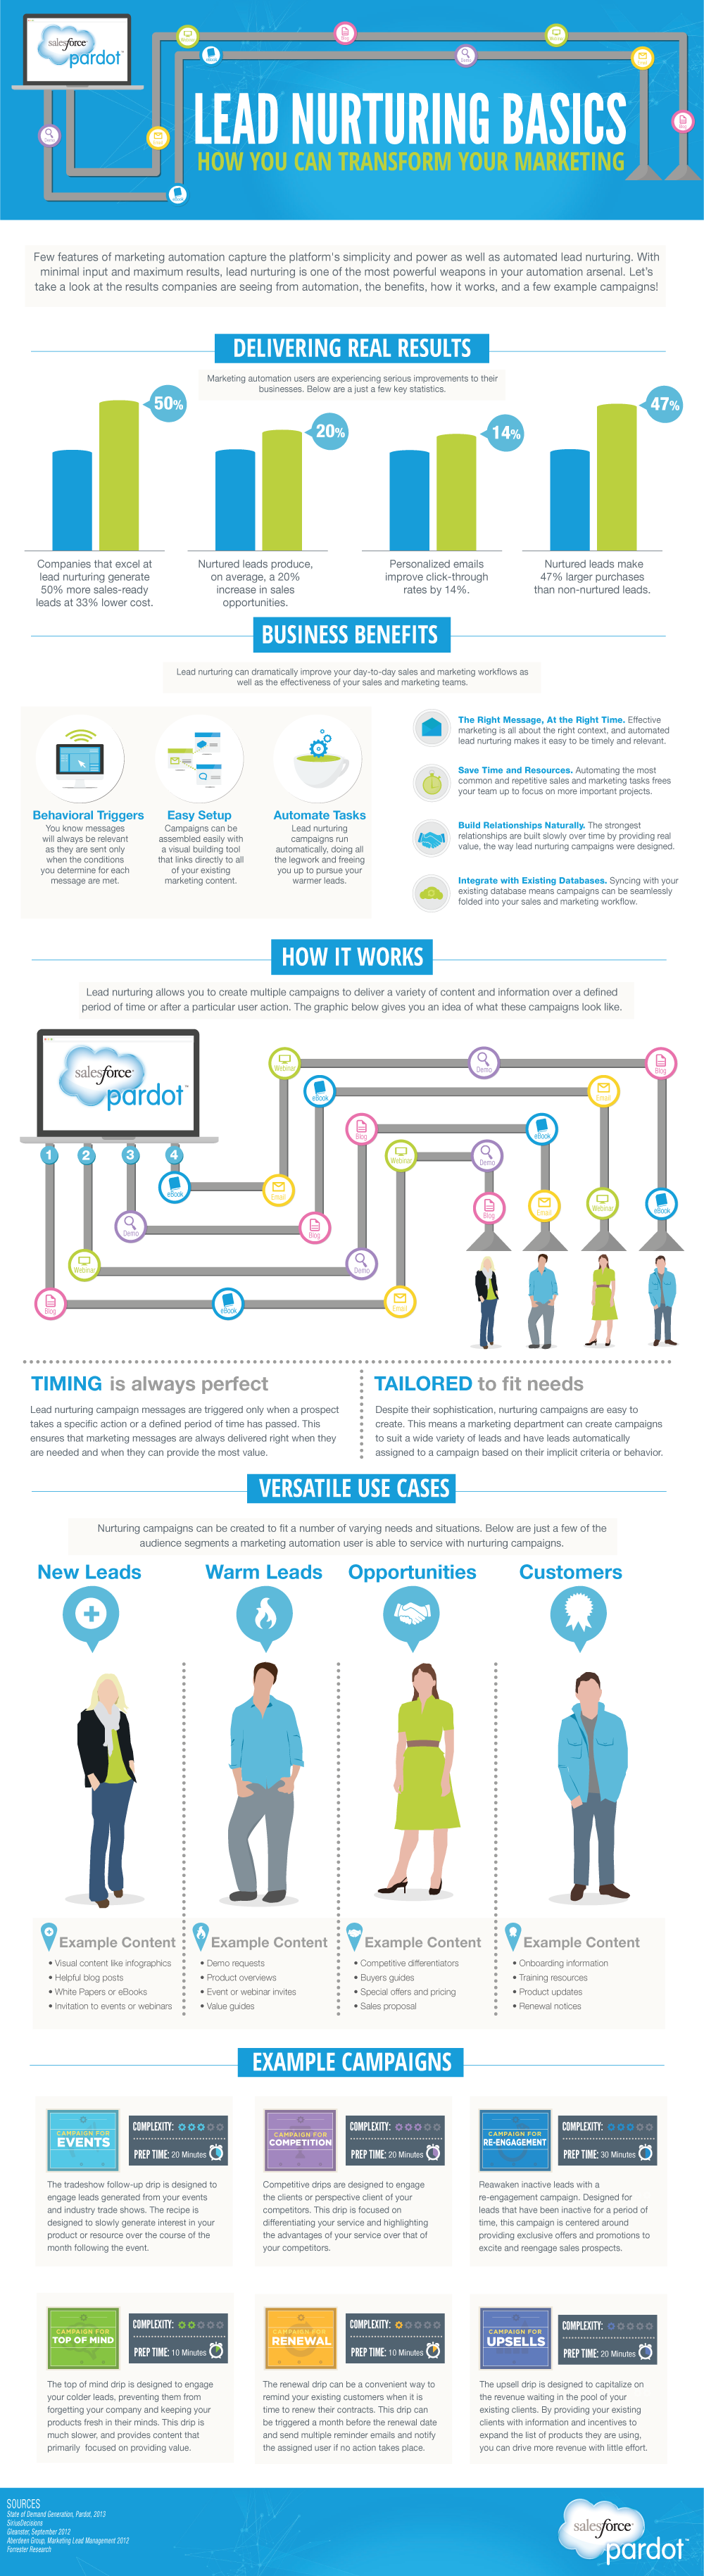 Infographic – Lead Nurturing Basics How You Can Transform Your Marketing